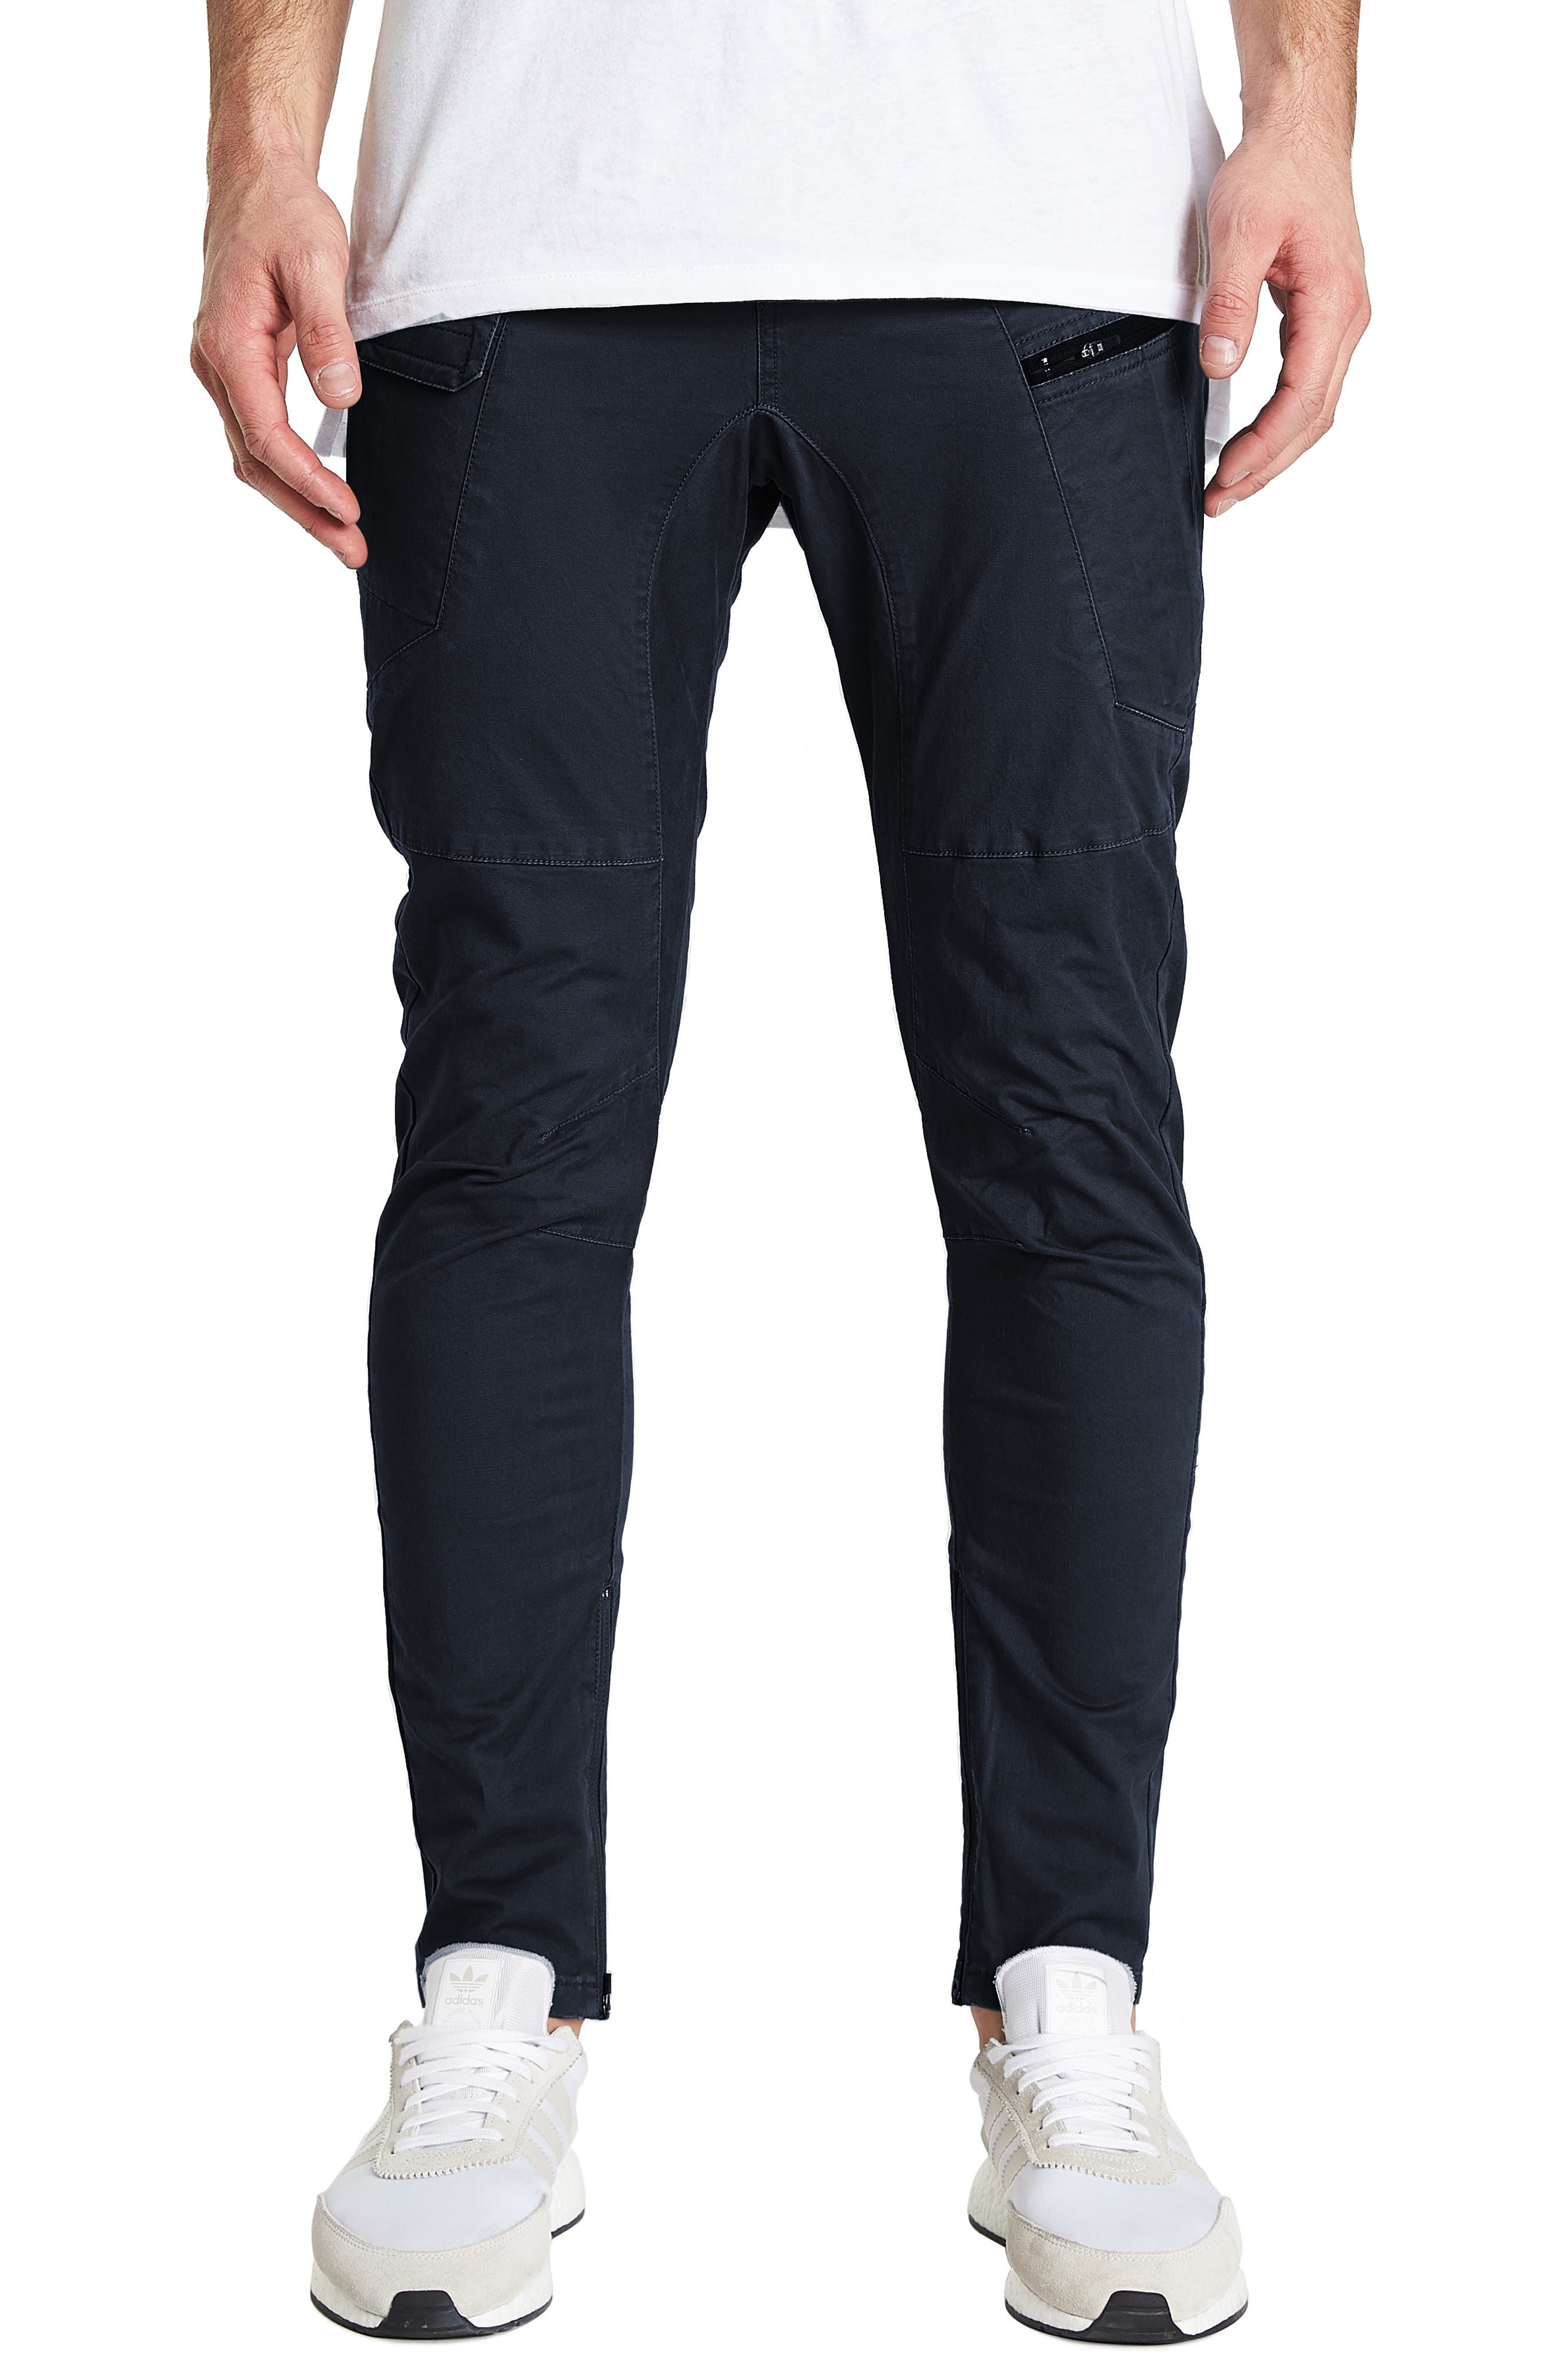 NXP Tactical Slim Fit Pants in India Ink